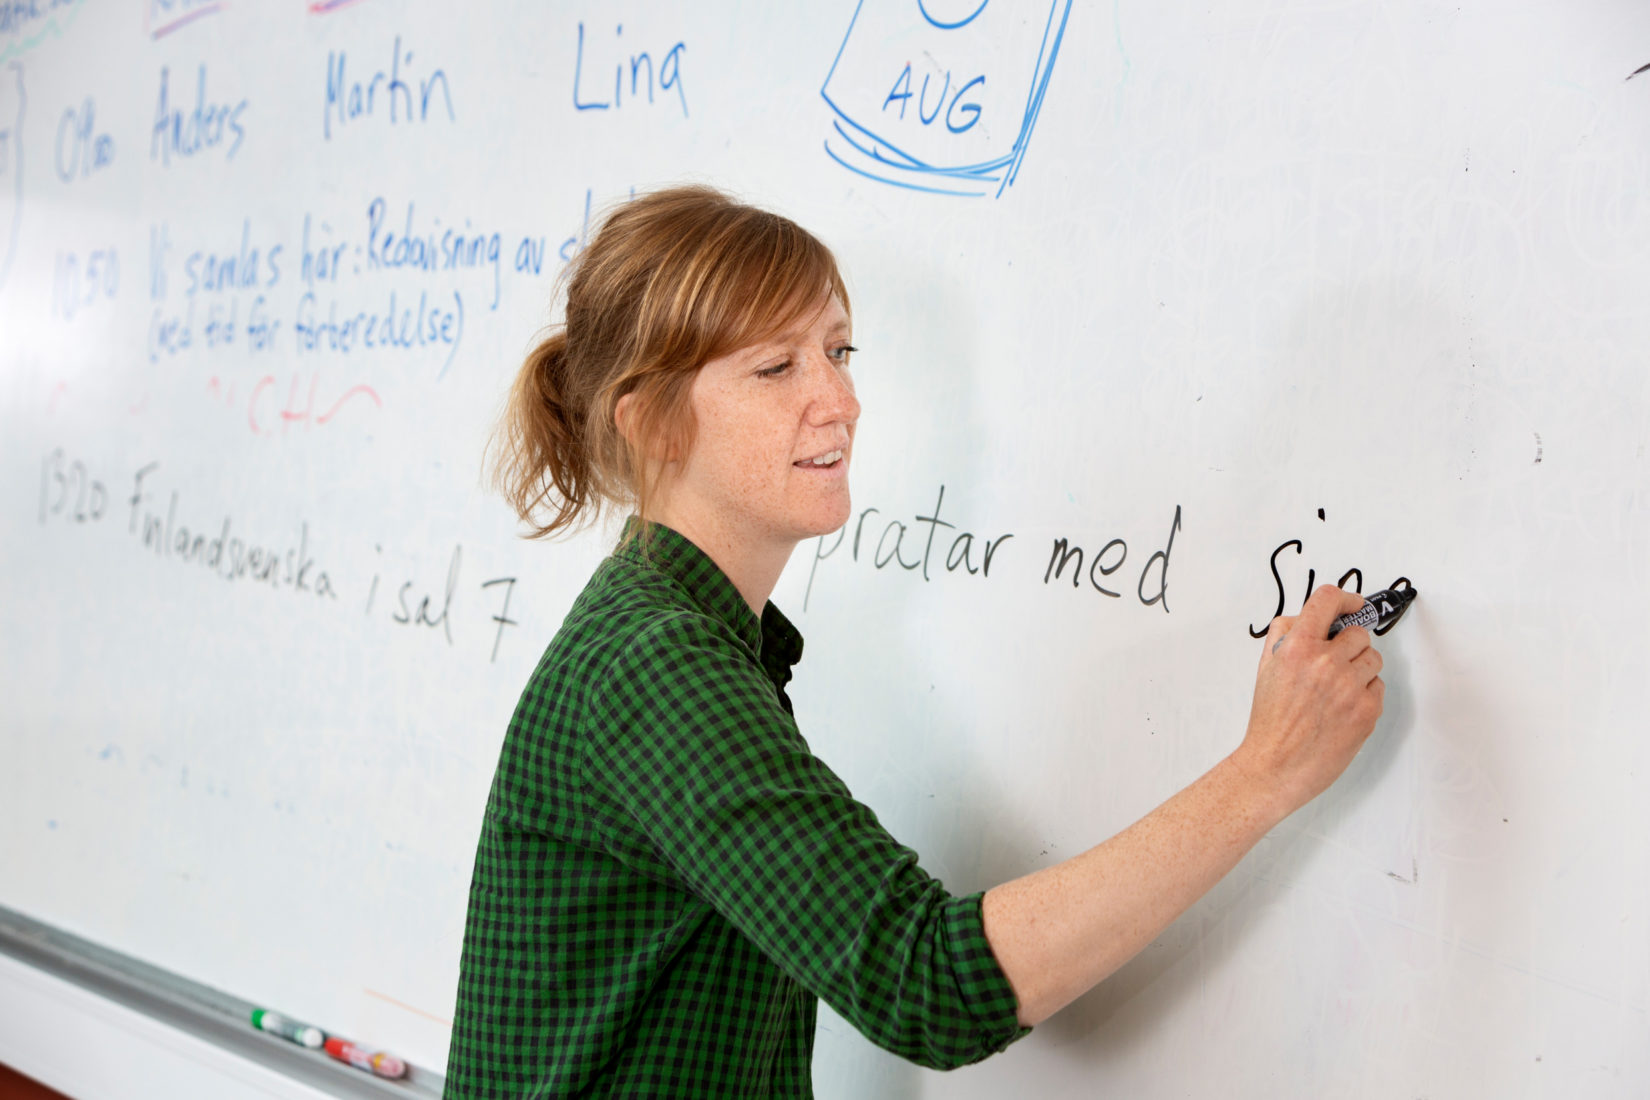 Woman writing on whiteboard.